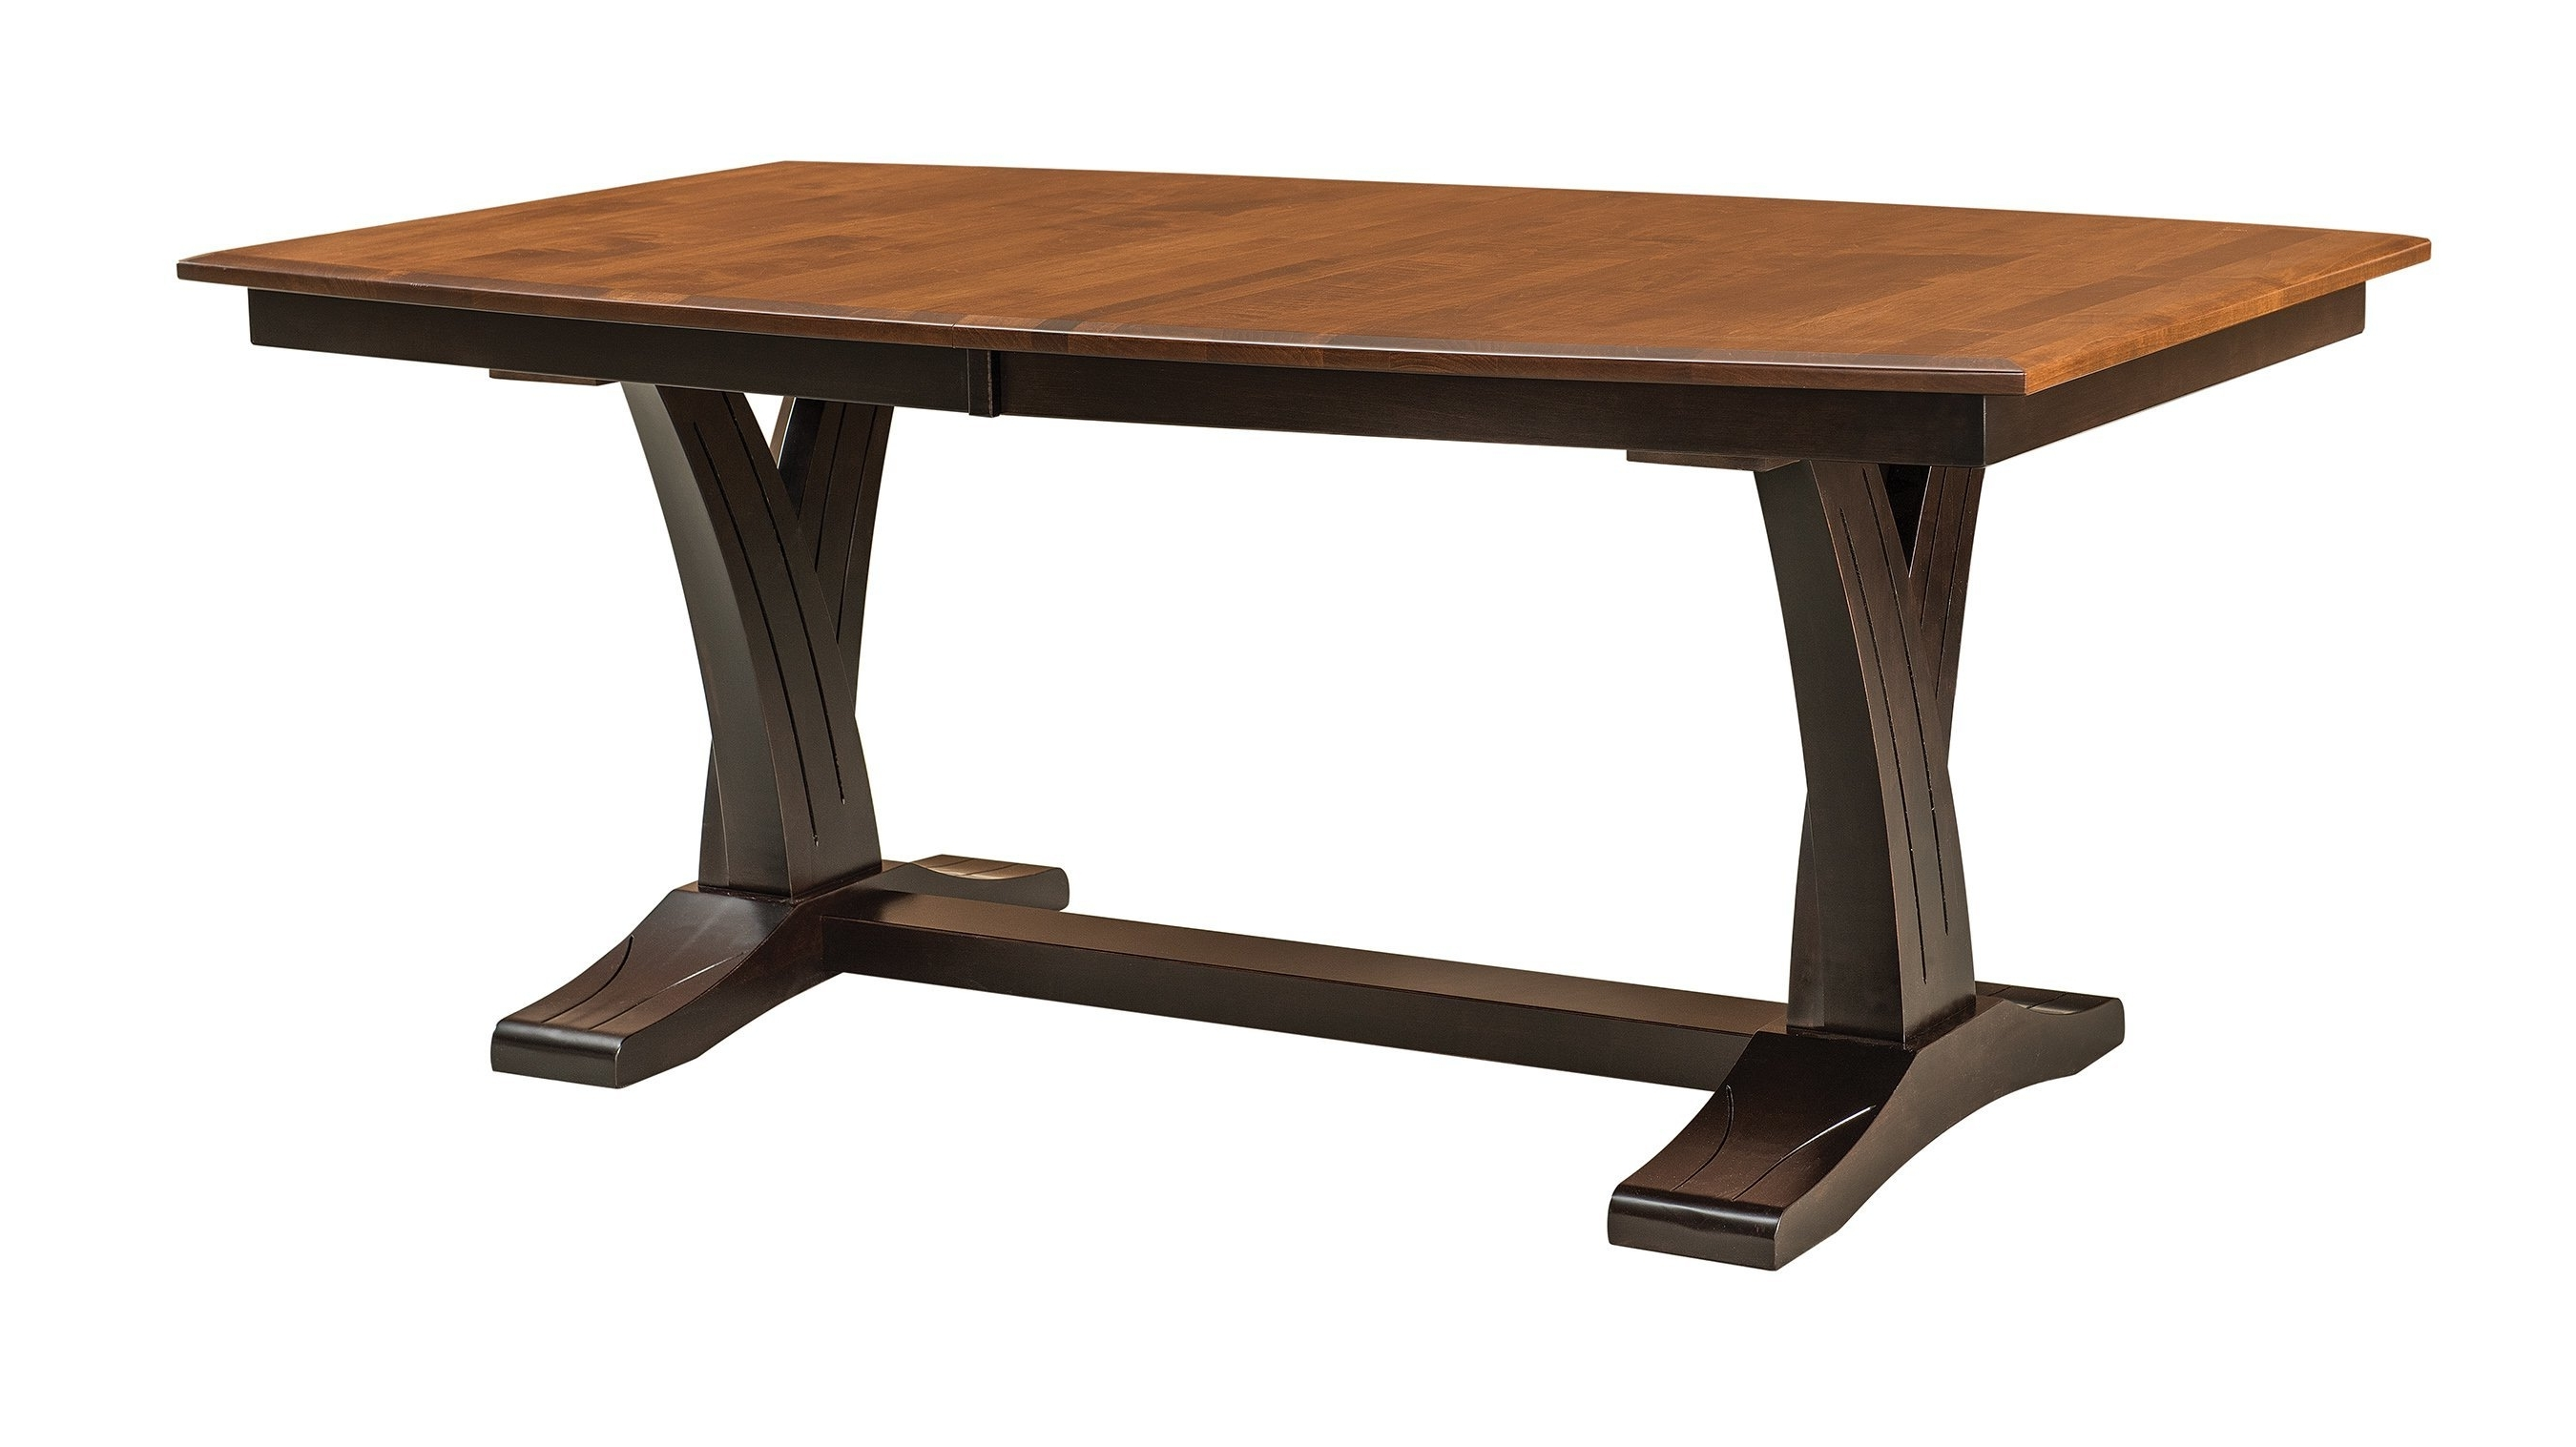 Valencia 72 Inch Extension Trestle Dining Tables inside Popular Trestle Dining Table - Photos Table And Pillow Weirdmonger